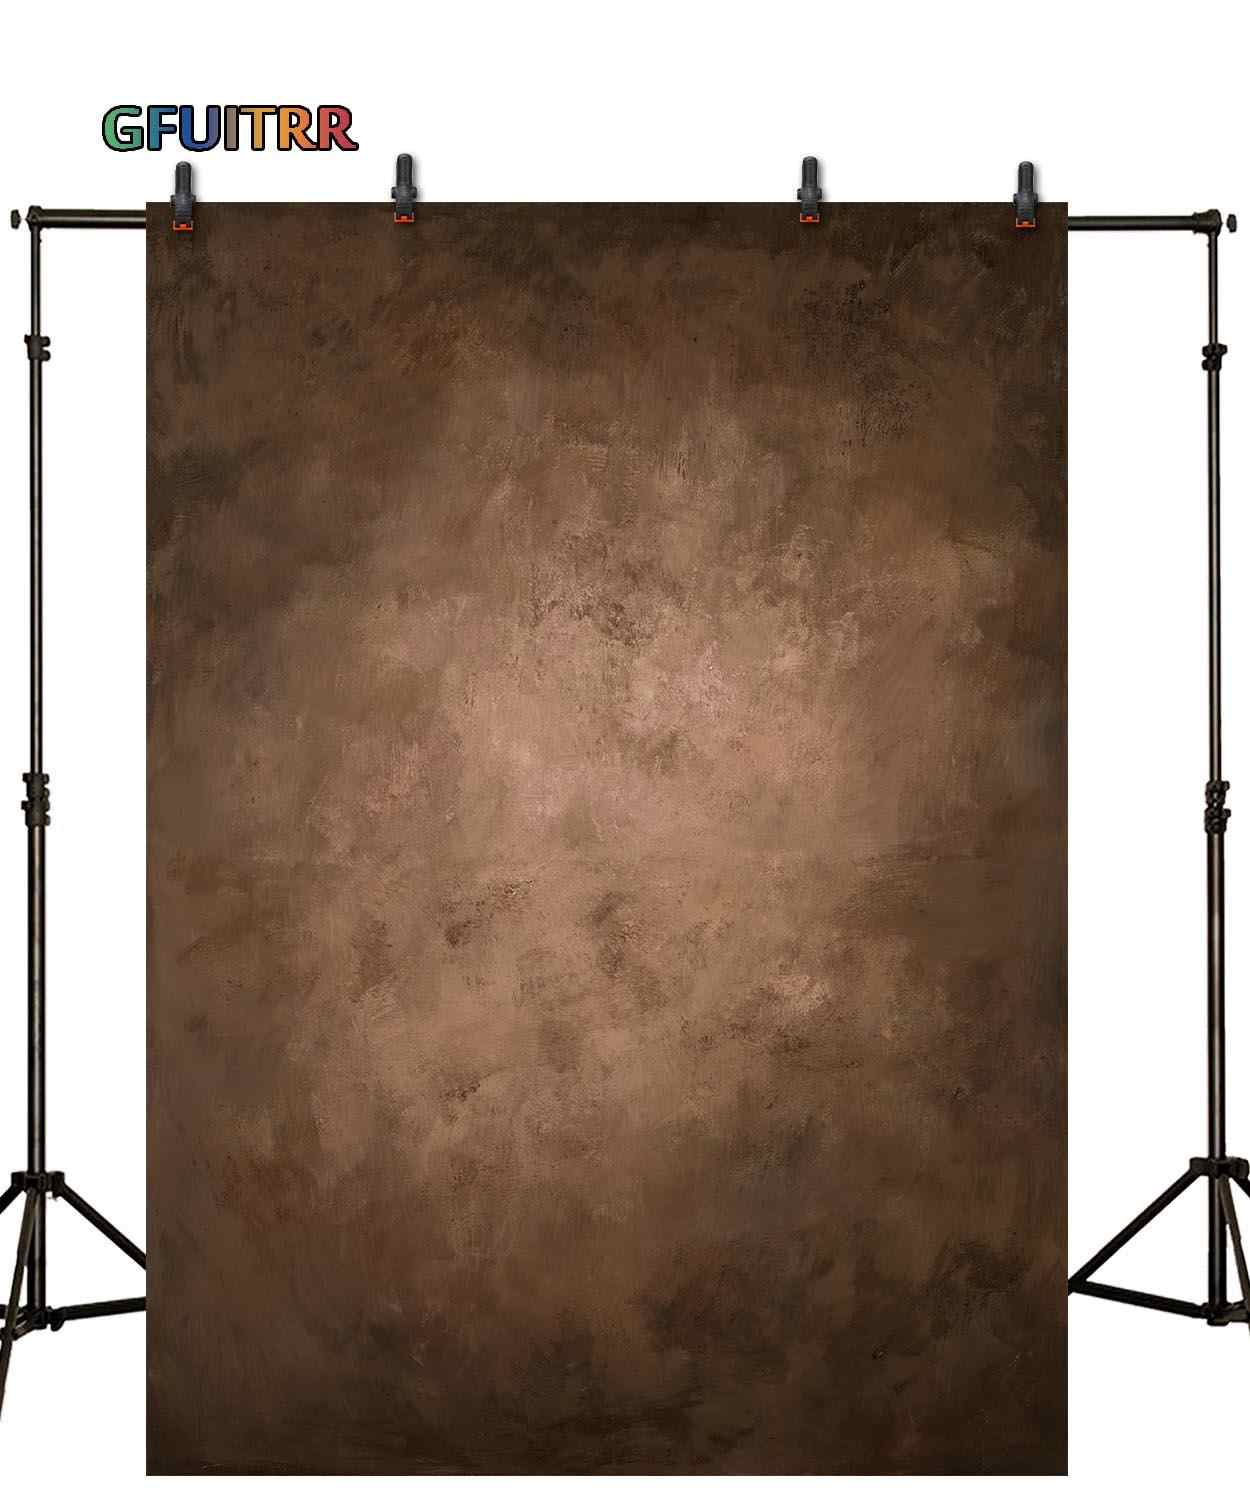 6x6FT Vinyl Photography Backdrop,Geometric,Retro Cube Pattern Photo Background for Photo Booth Studio Props